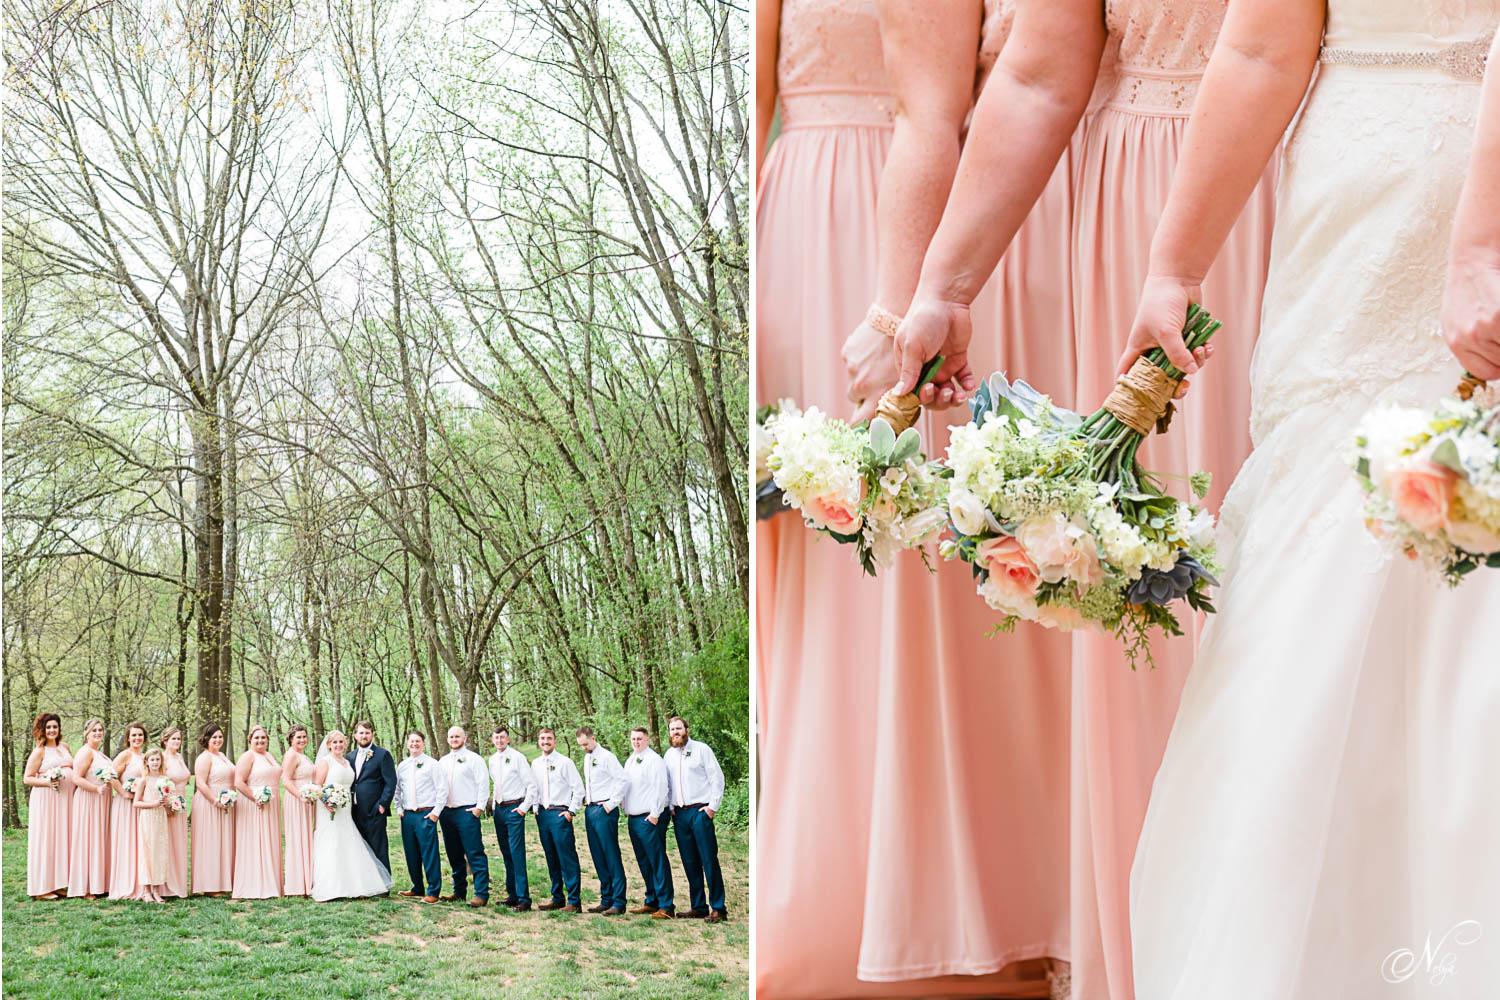 full large wedding party under tall trees by the river in east TN. And coral bridesmaids dresses.